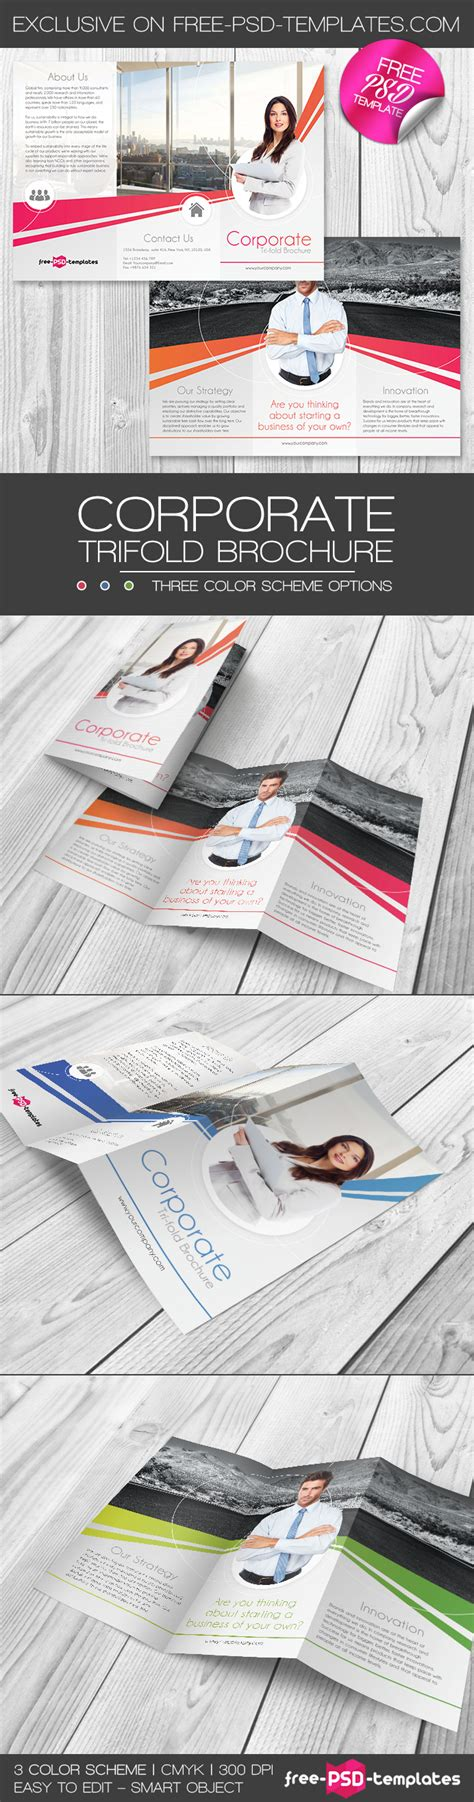 Corporate Free Psd Trifold Brochure Template In Psd Free Psd Templates Corporate Brochure Templates Free